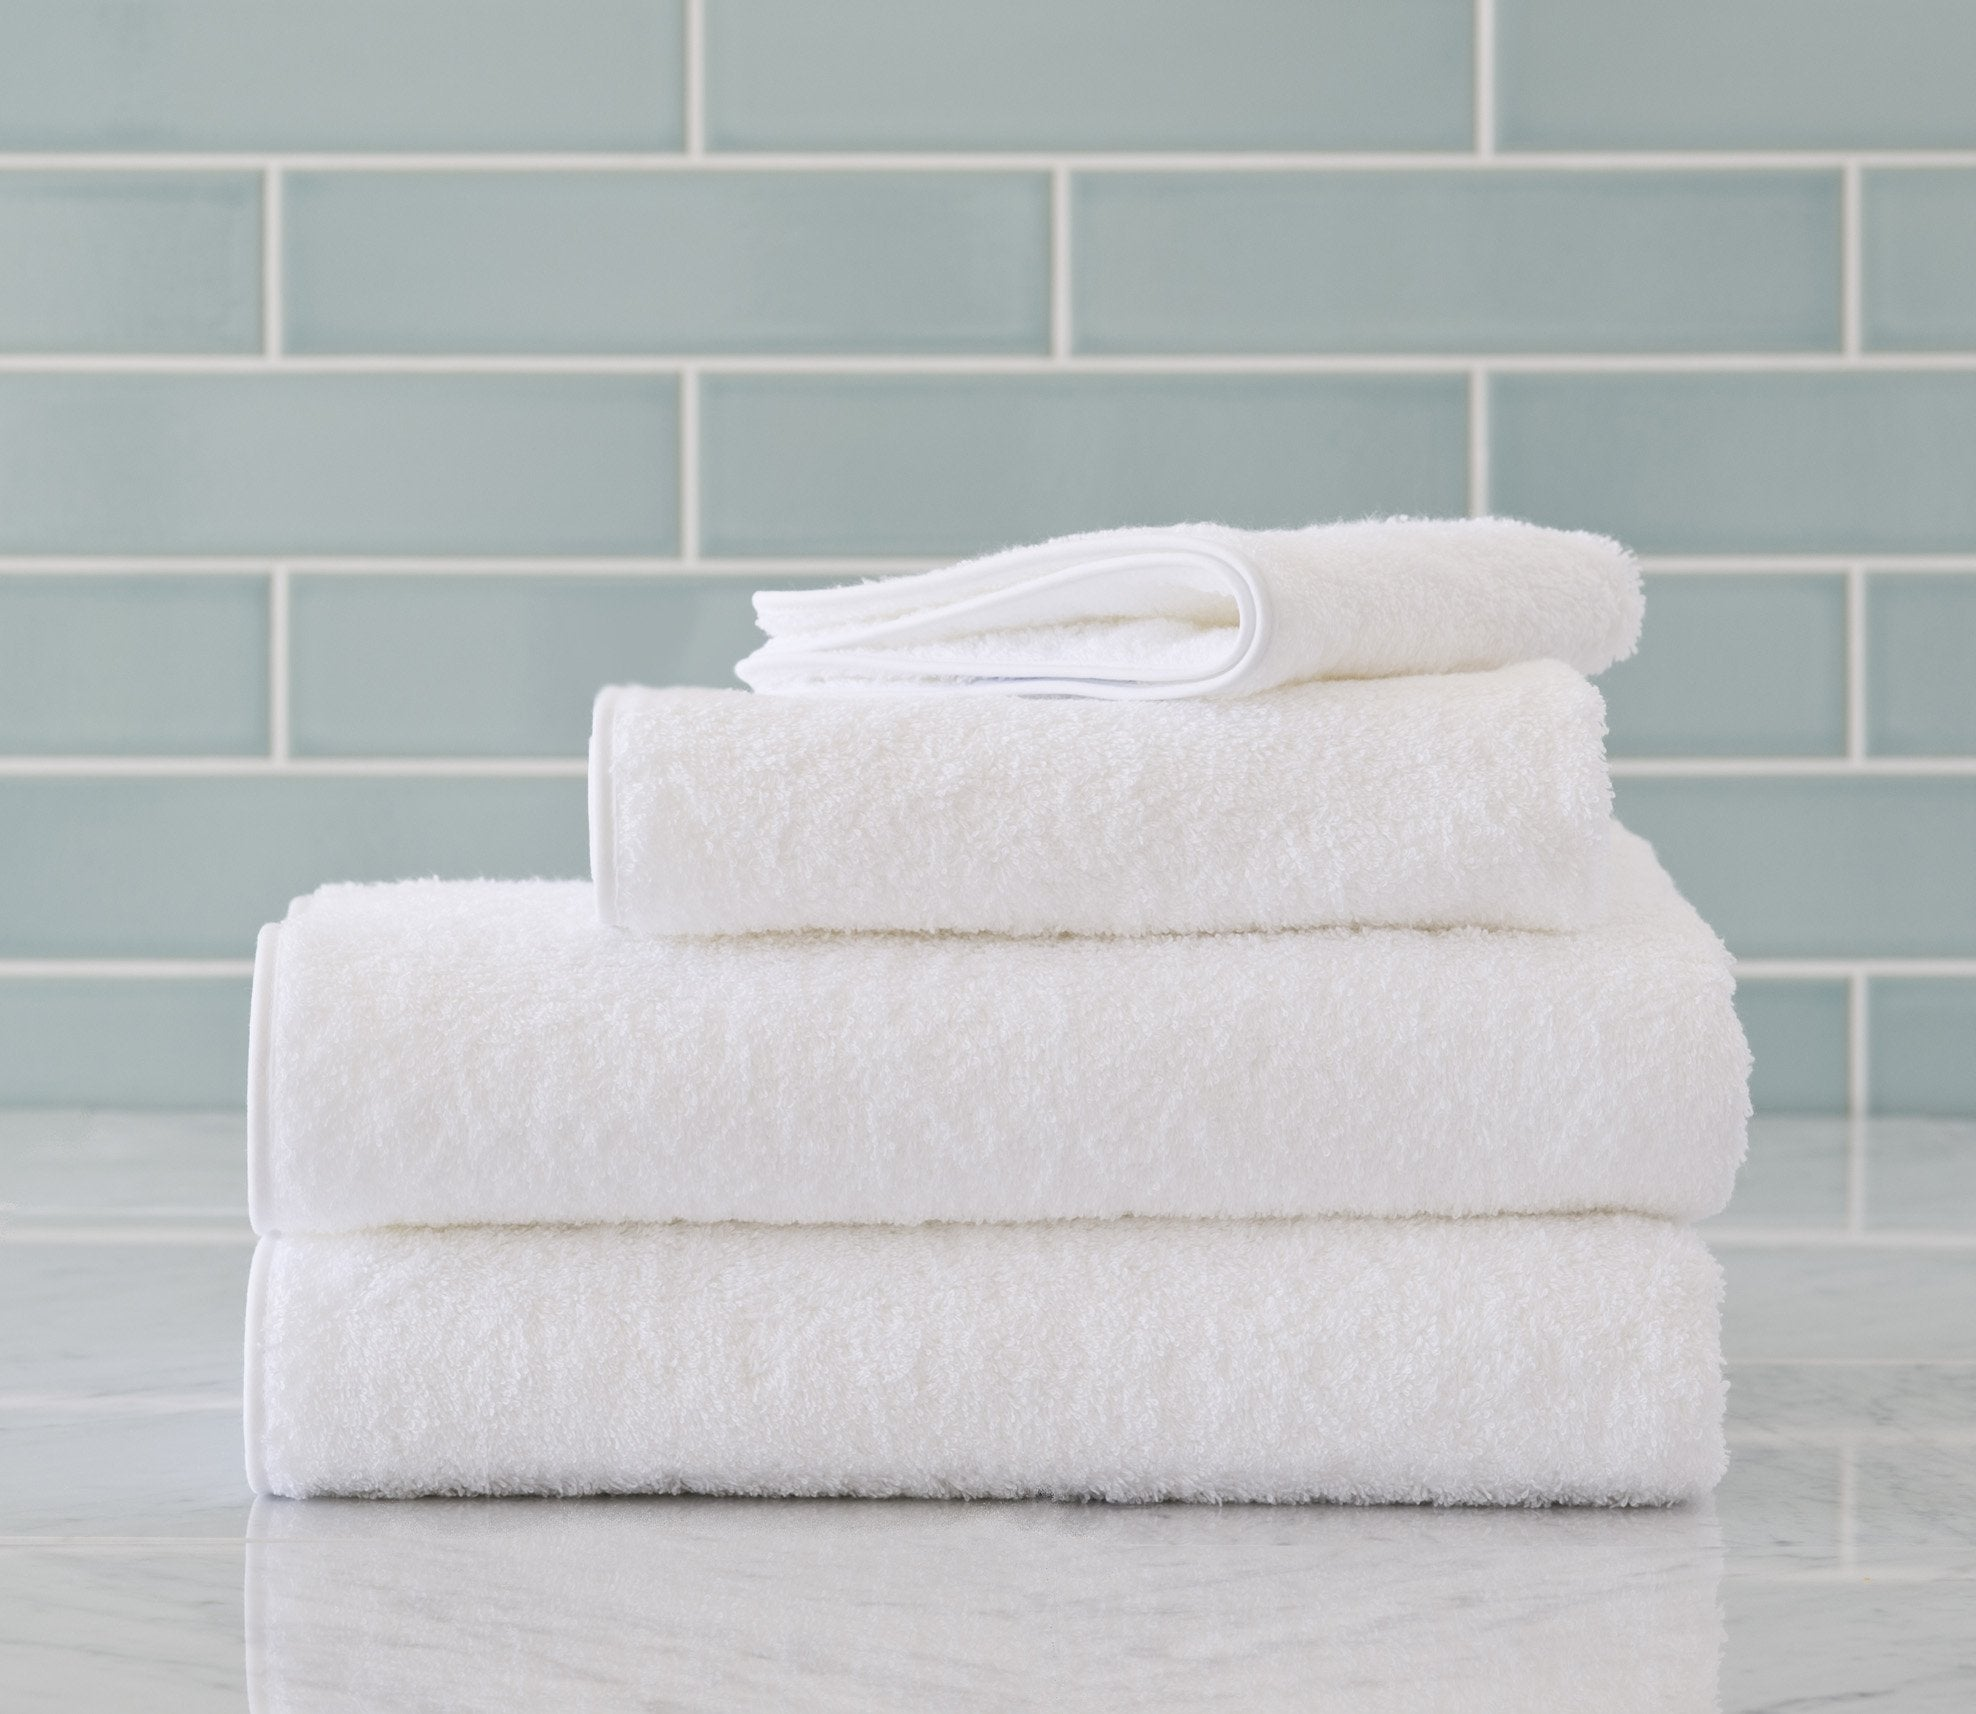 Cairo Hand Towel White Product Image 1